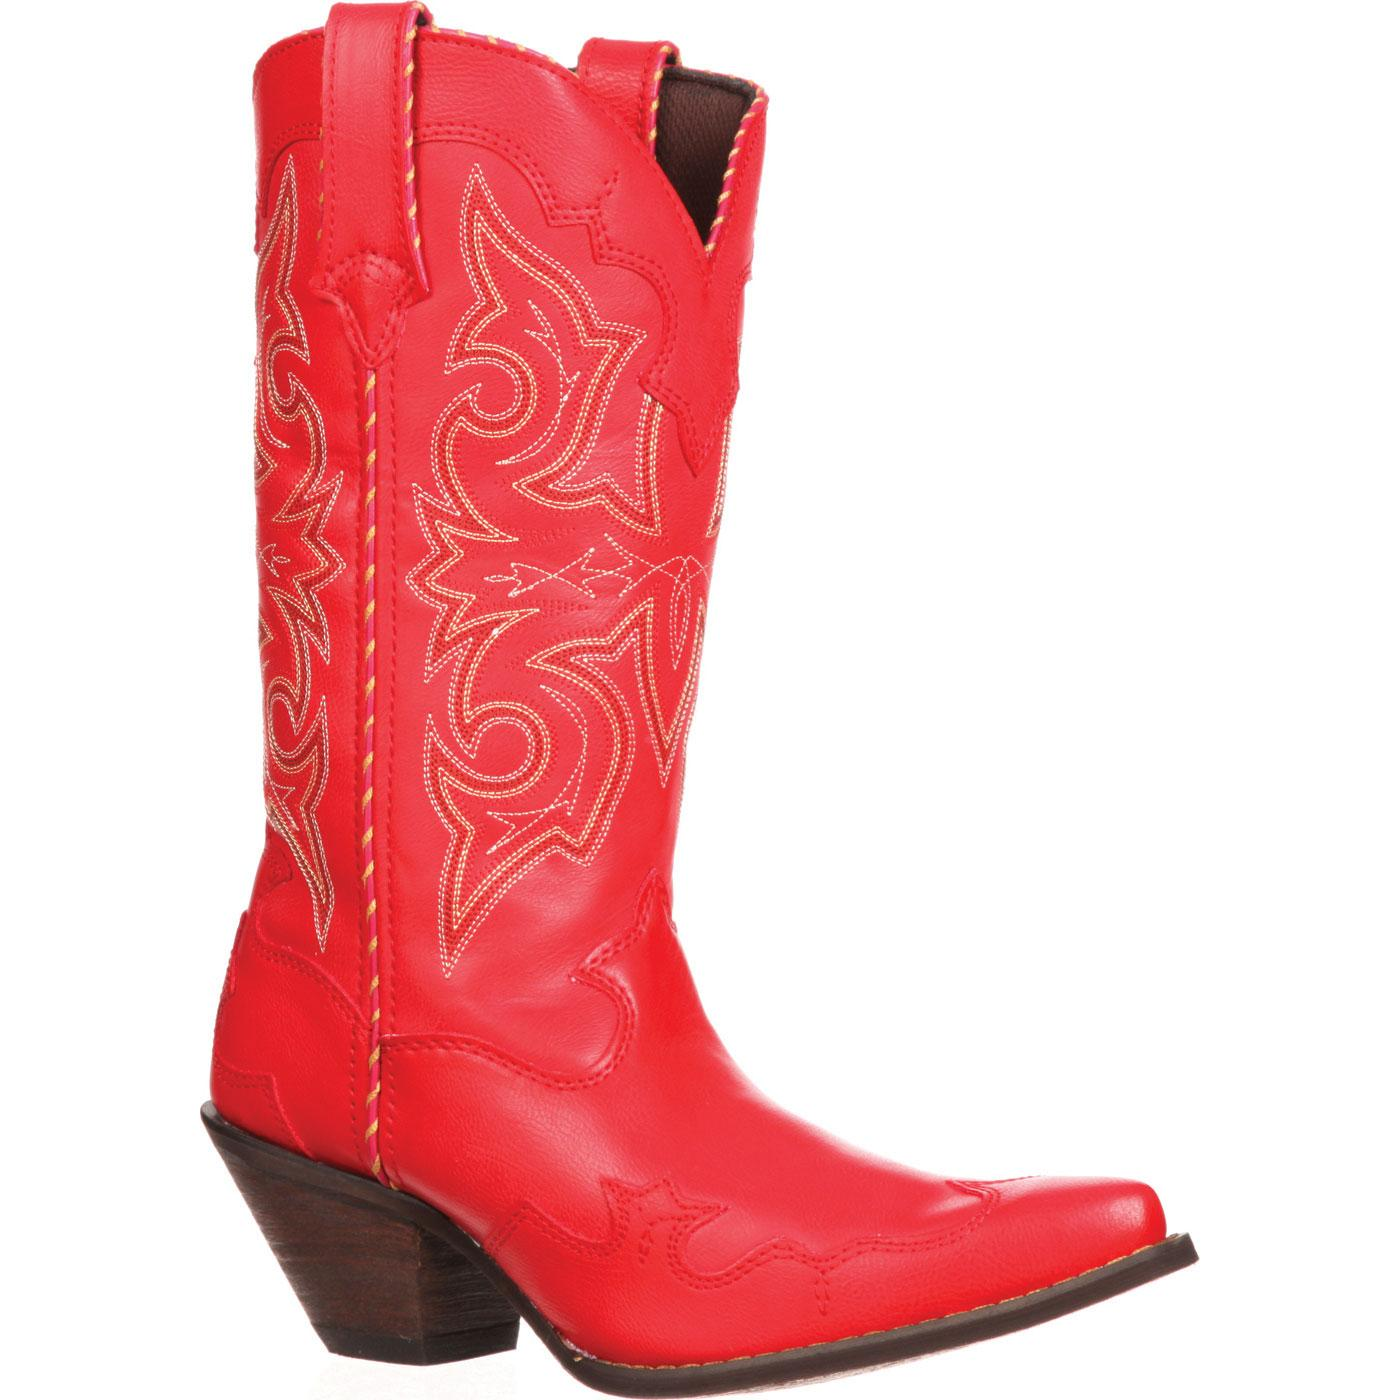 a0021b210e4 Crush by Durango  Women s 12-Inch Red Western Boots